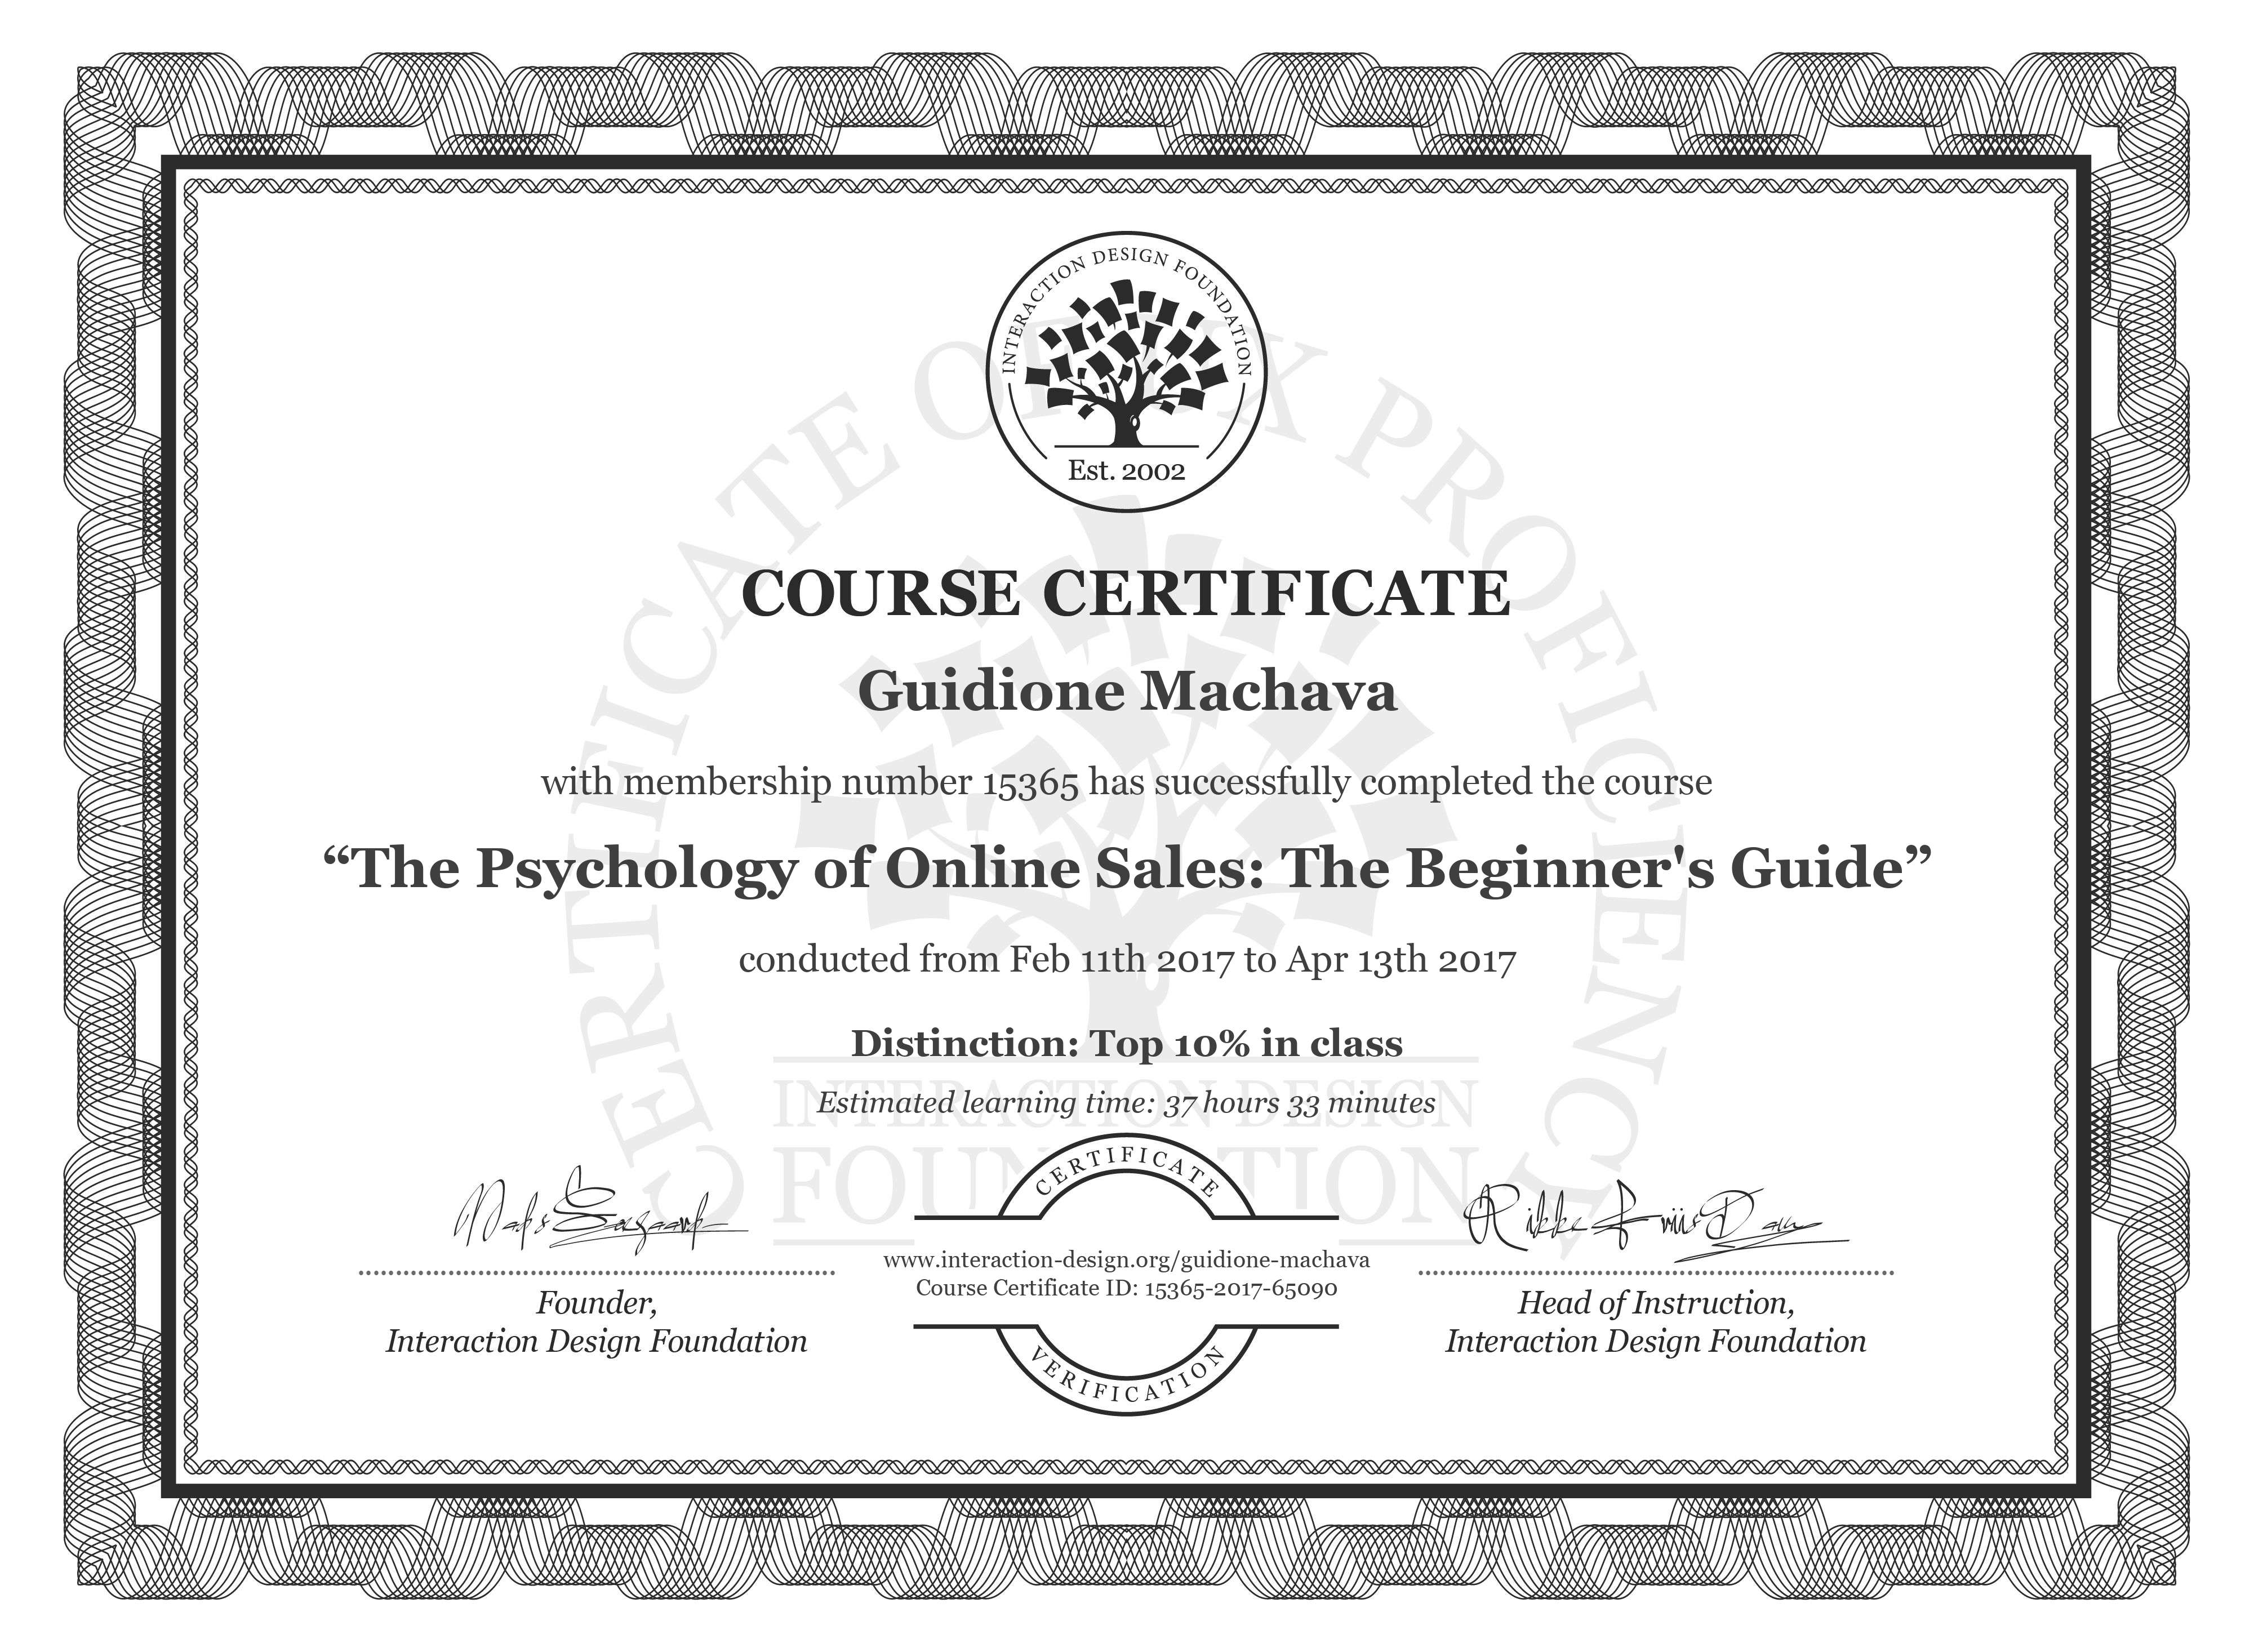 Guidione Machava's Course Certificate: The Psychology of Online Sales: The Beginner's Guide